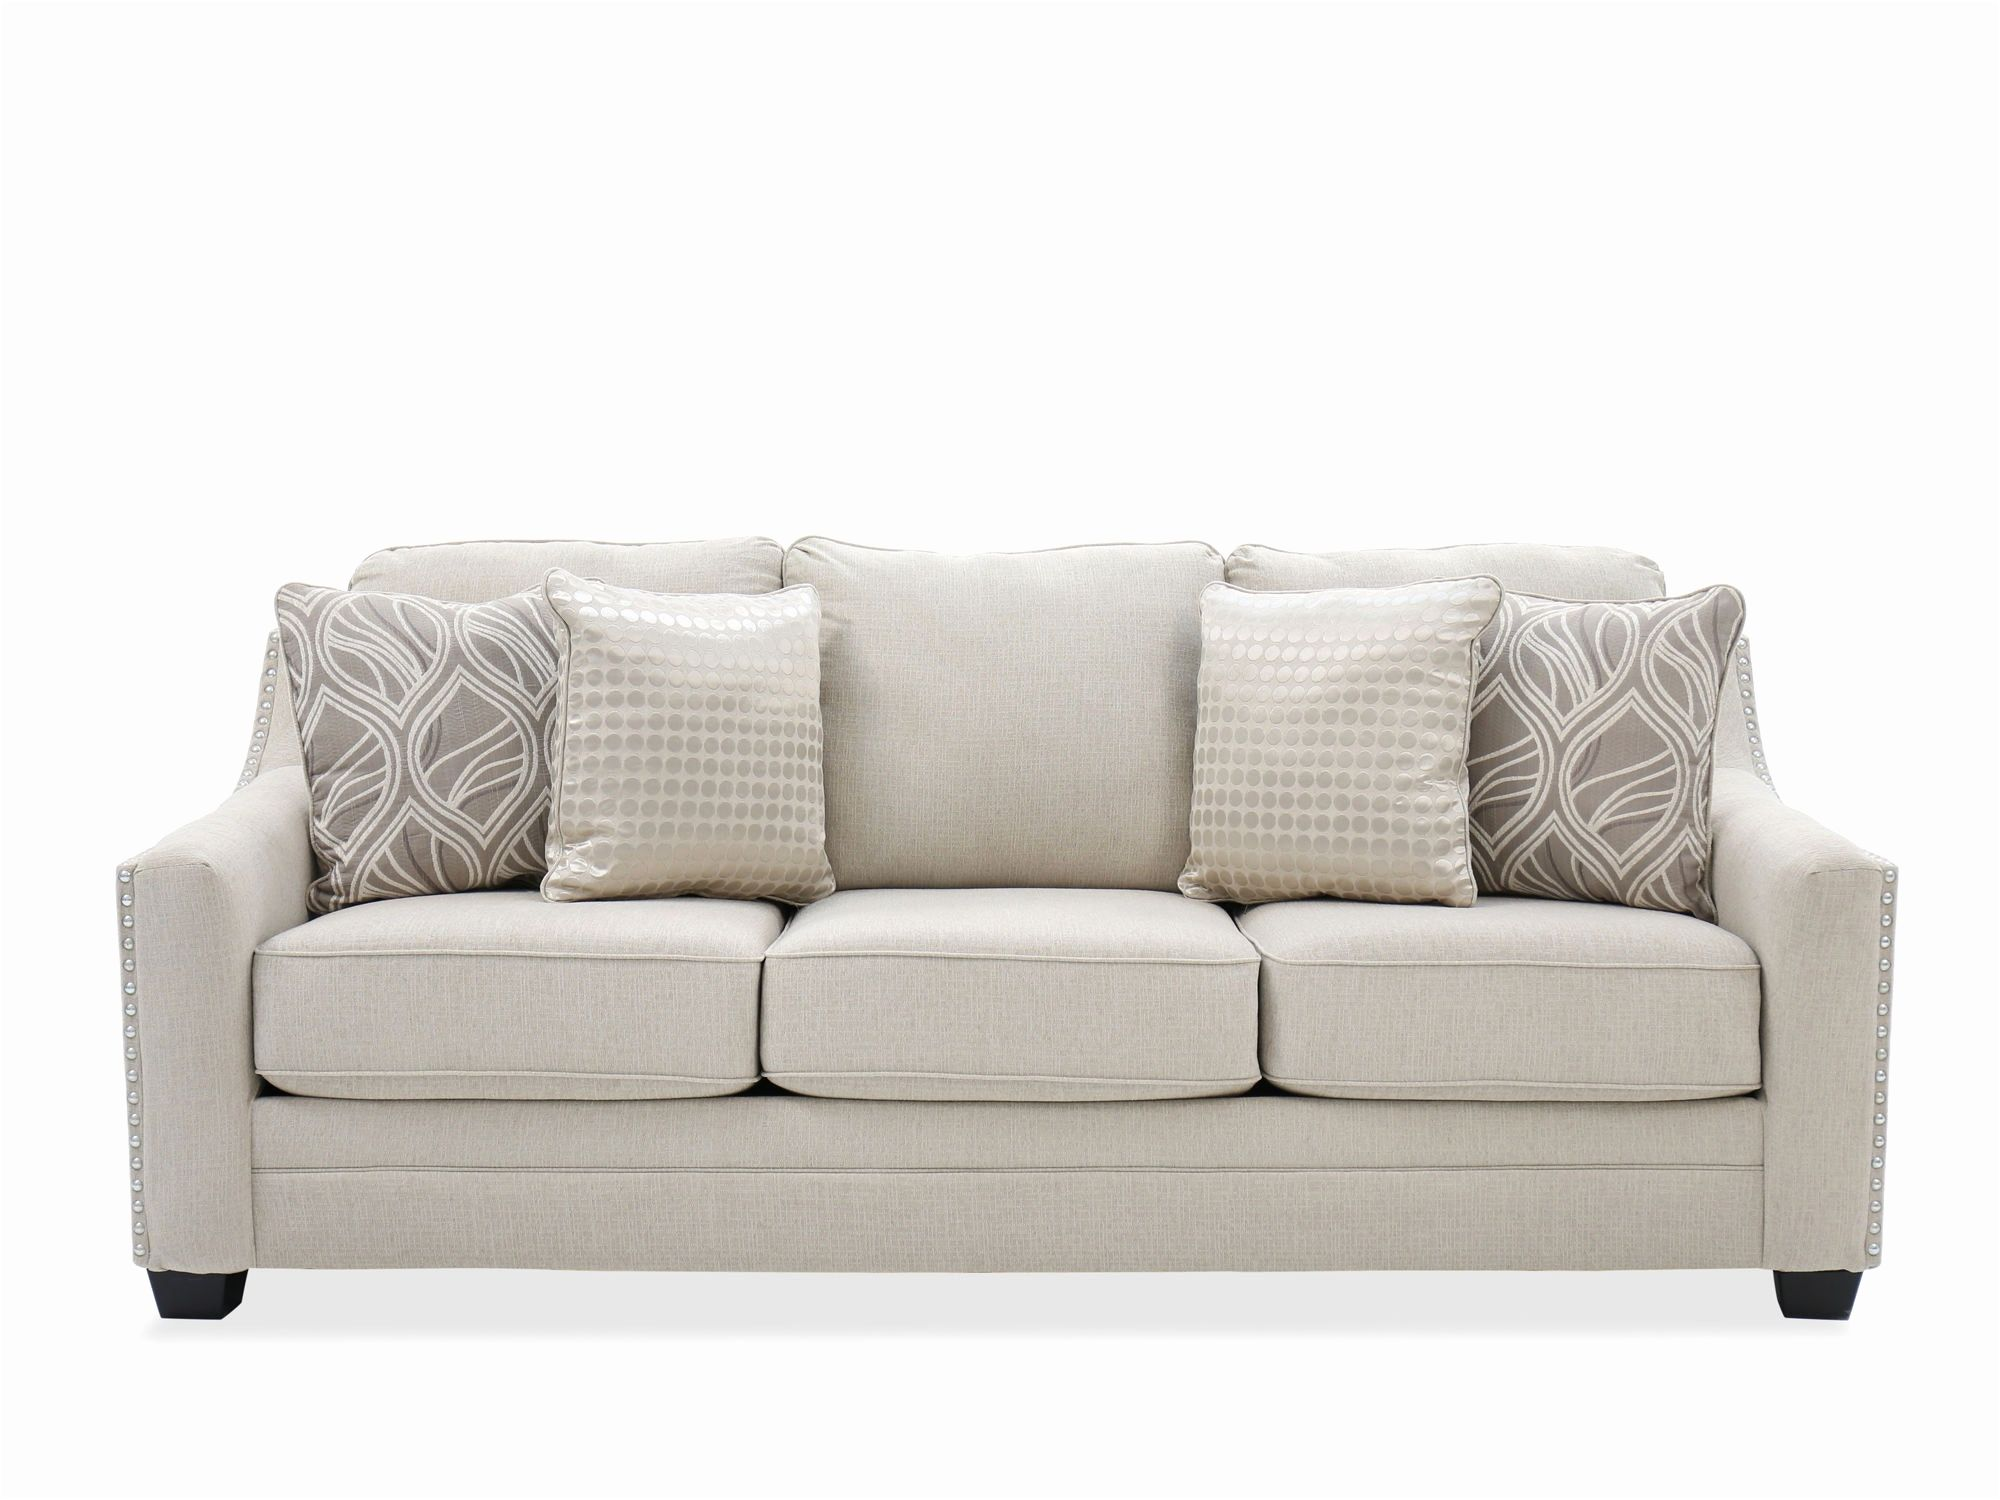 sensational deep seat sofa image-Finest Deep Seat sofa Pattern